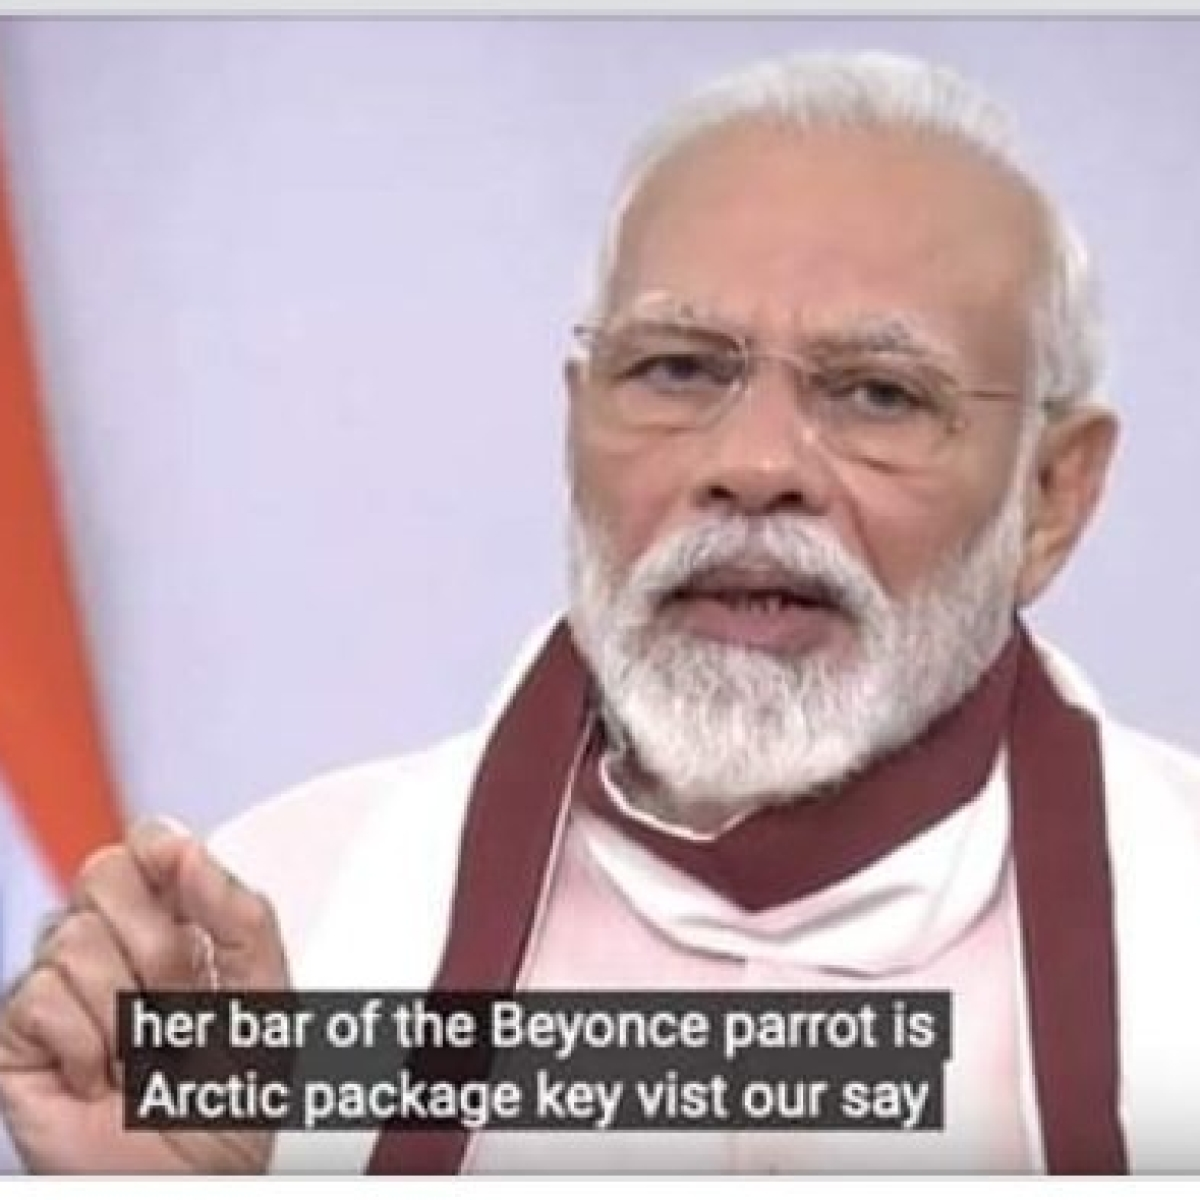 'Her bar of the Beyonce parrot': These YouTube captions during PM Modi's live speech are too funny to miss out